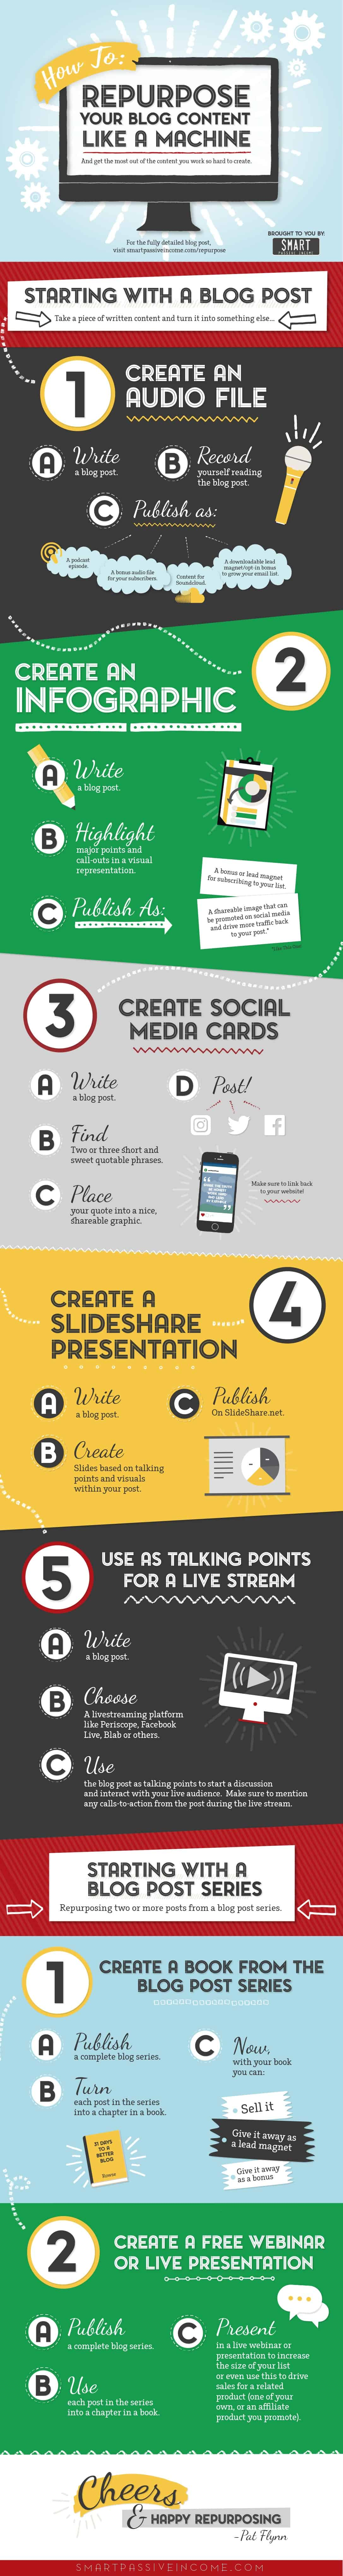 Make The Most Out Of Your Content | Daily Infographic